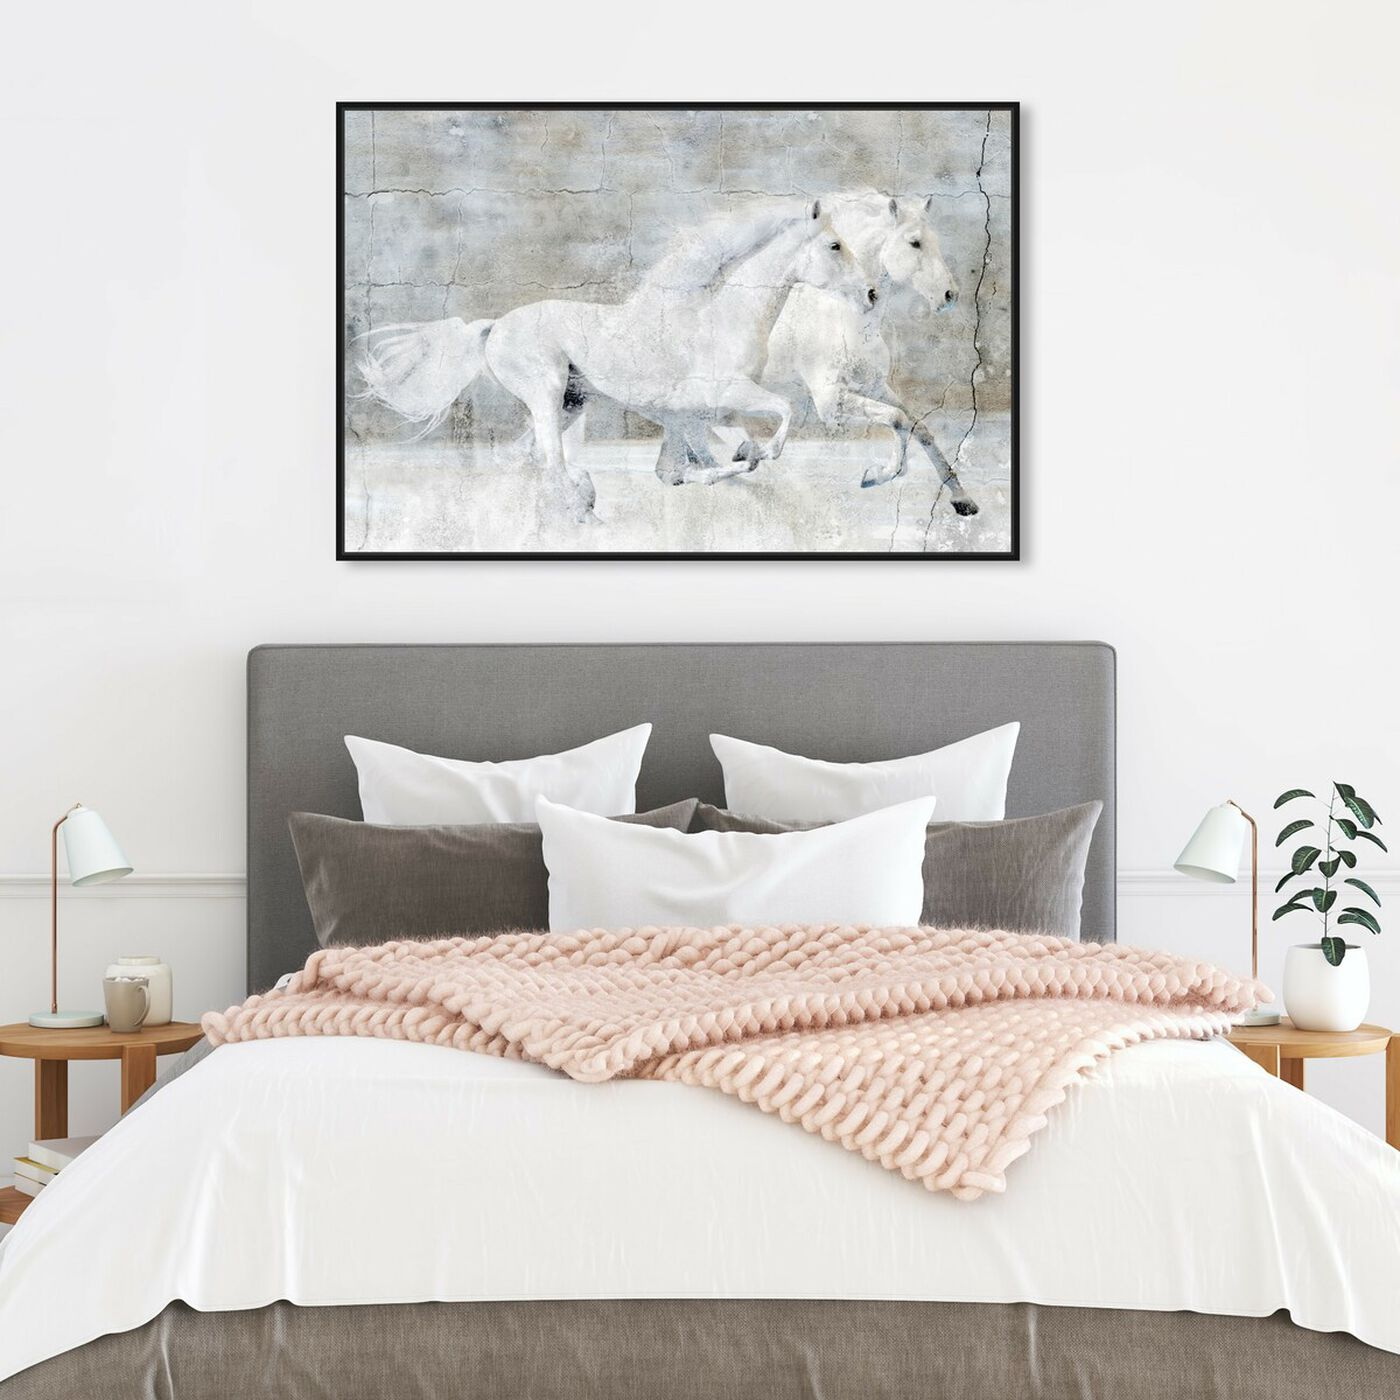 Hanging view of Running Wild featuring animals and farm animals art.